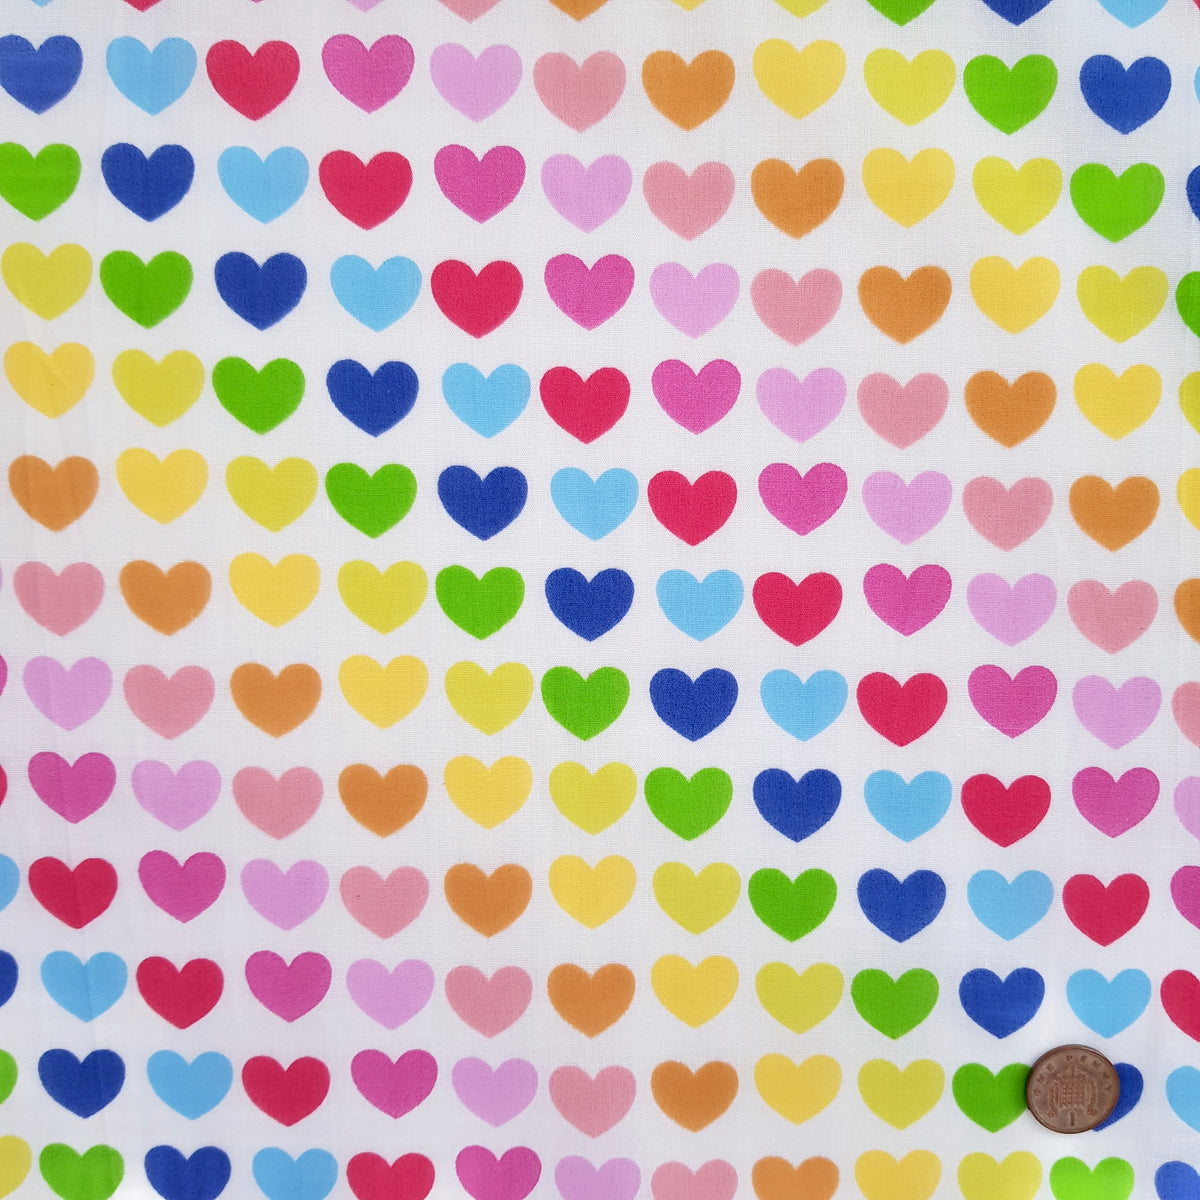 Rainbow Hearts Polycotton Fabric per 1/2 metre 112cm wide